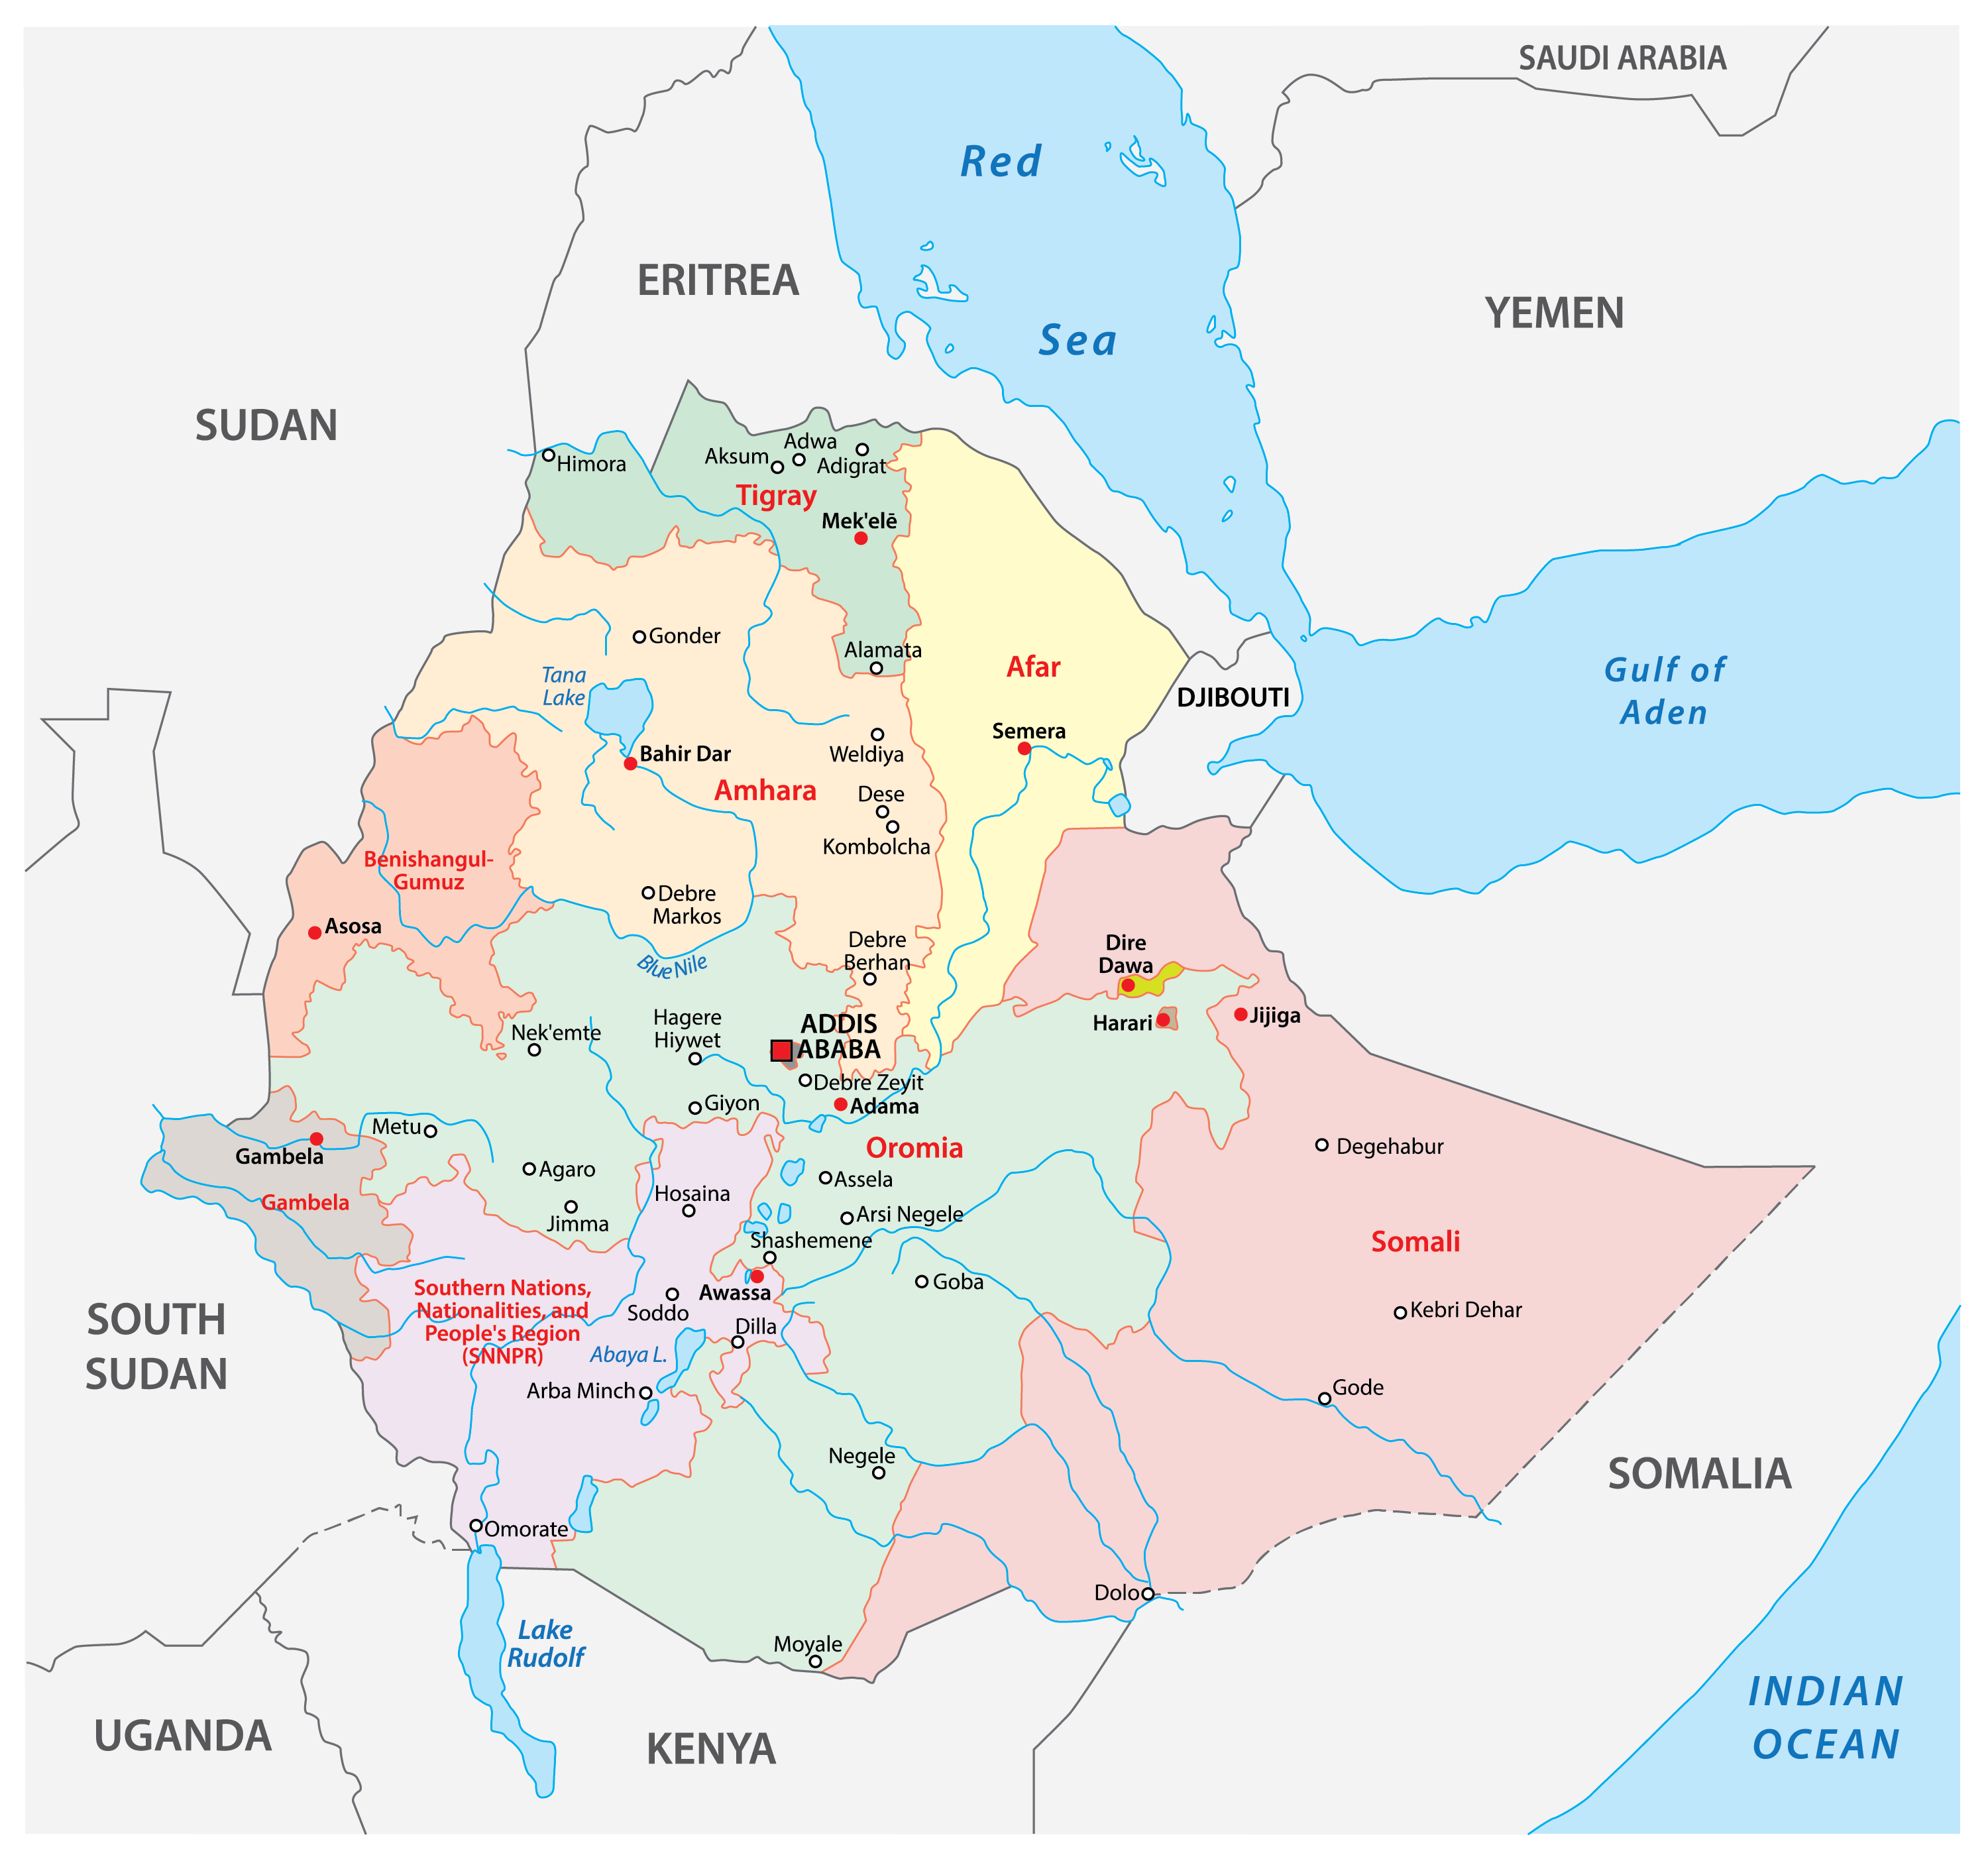 Political Map of Ethiopia showing the regions, their capitals and the capital city of Addis Ababa.